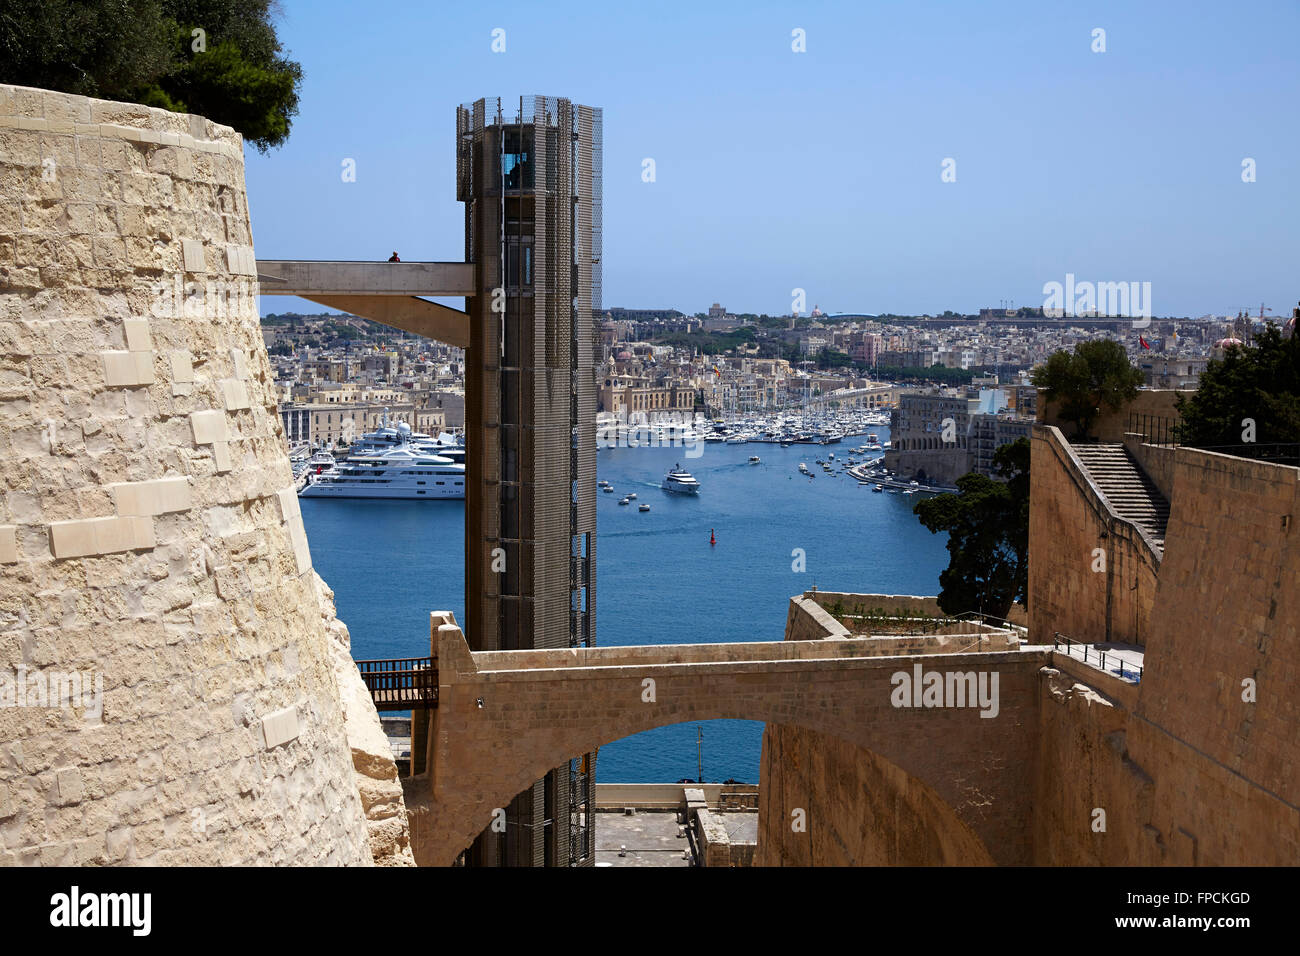 A view of the Barrakka Lift in Valletta in the historic part of the town. - Stock Image